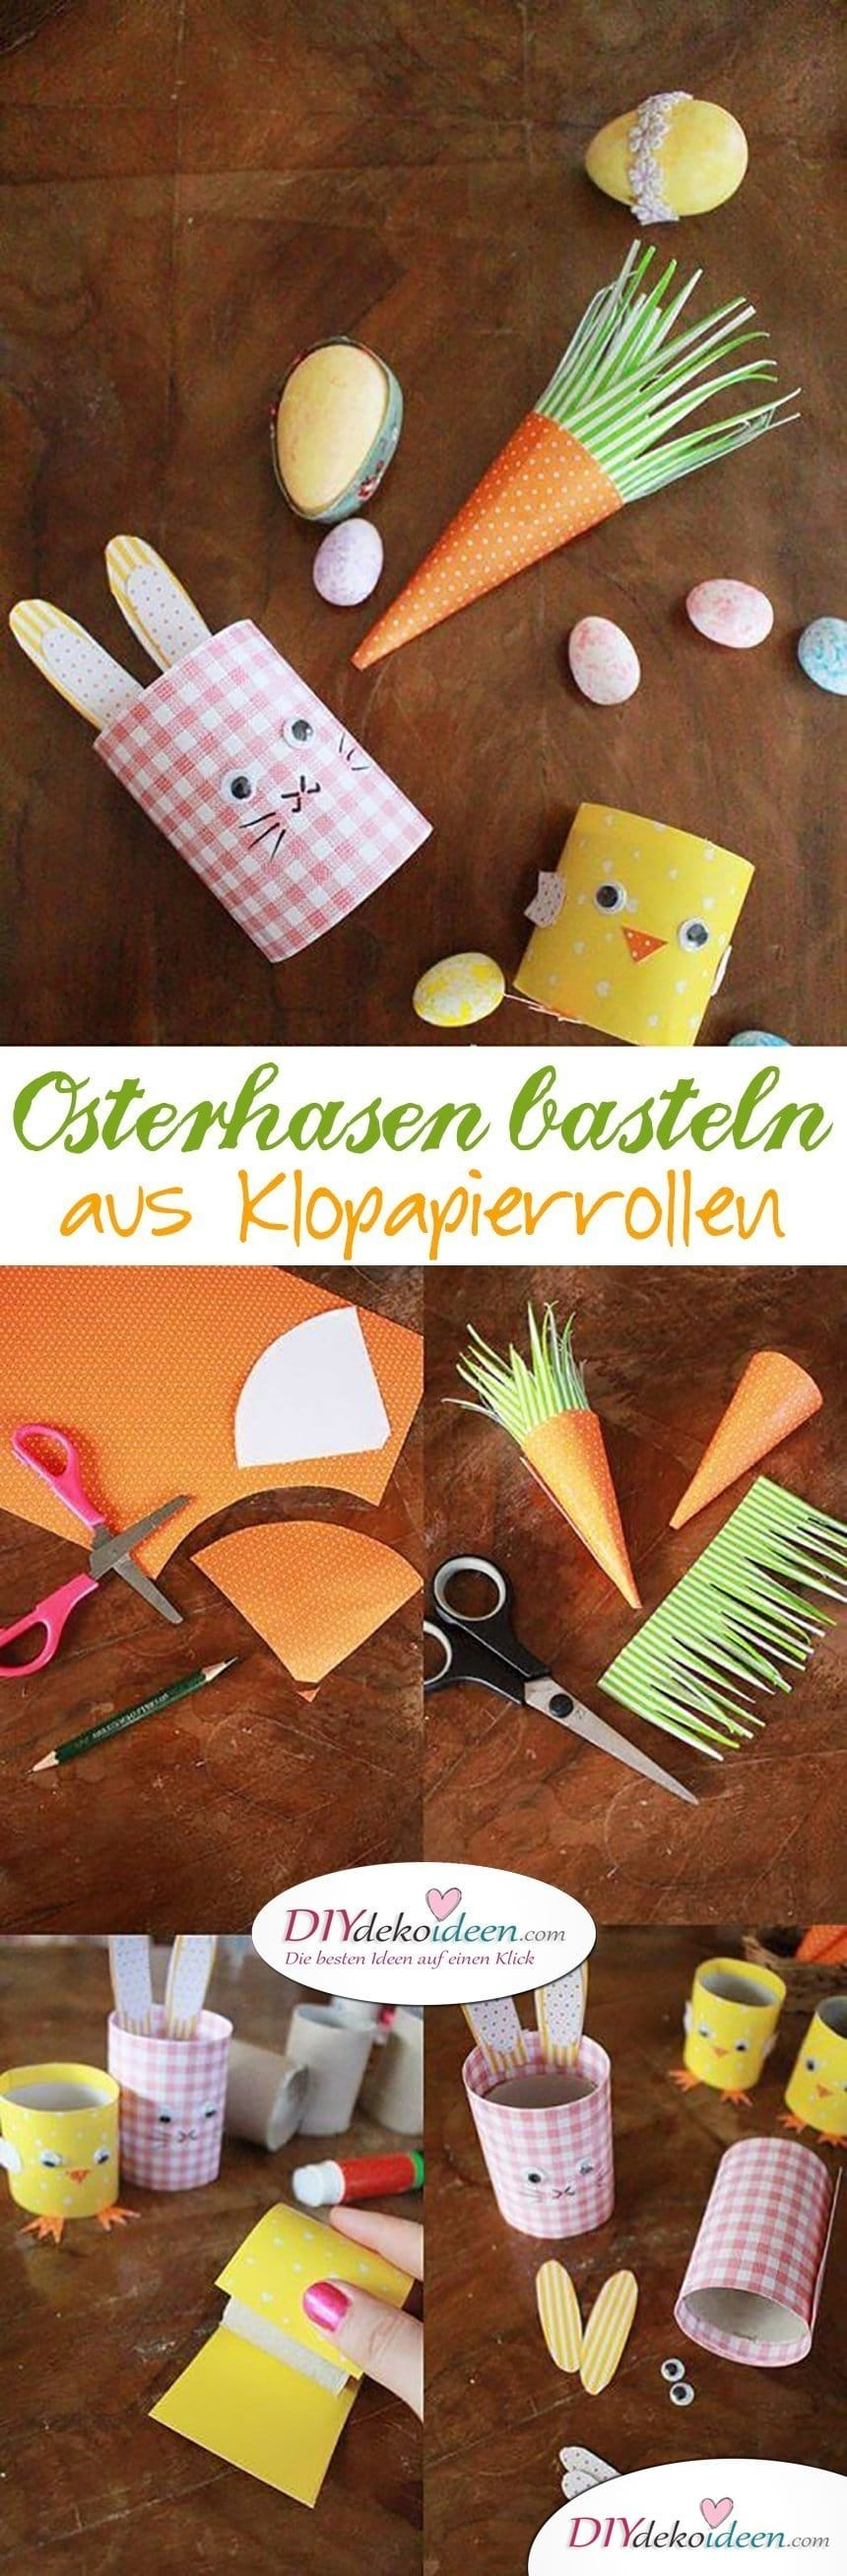 diy ideen mit klopapierrollen osterhasen basteln mit kleinkindern. Black Bedroom Furniture Sets. Home Design Ideas